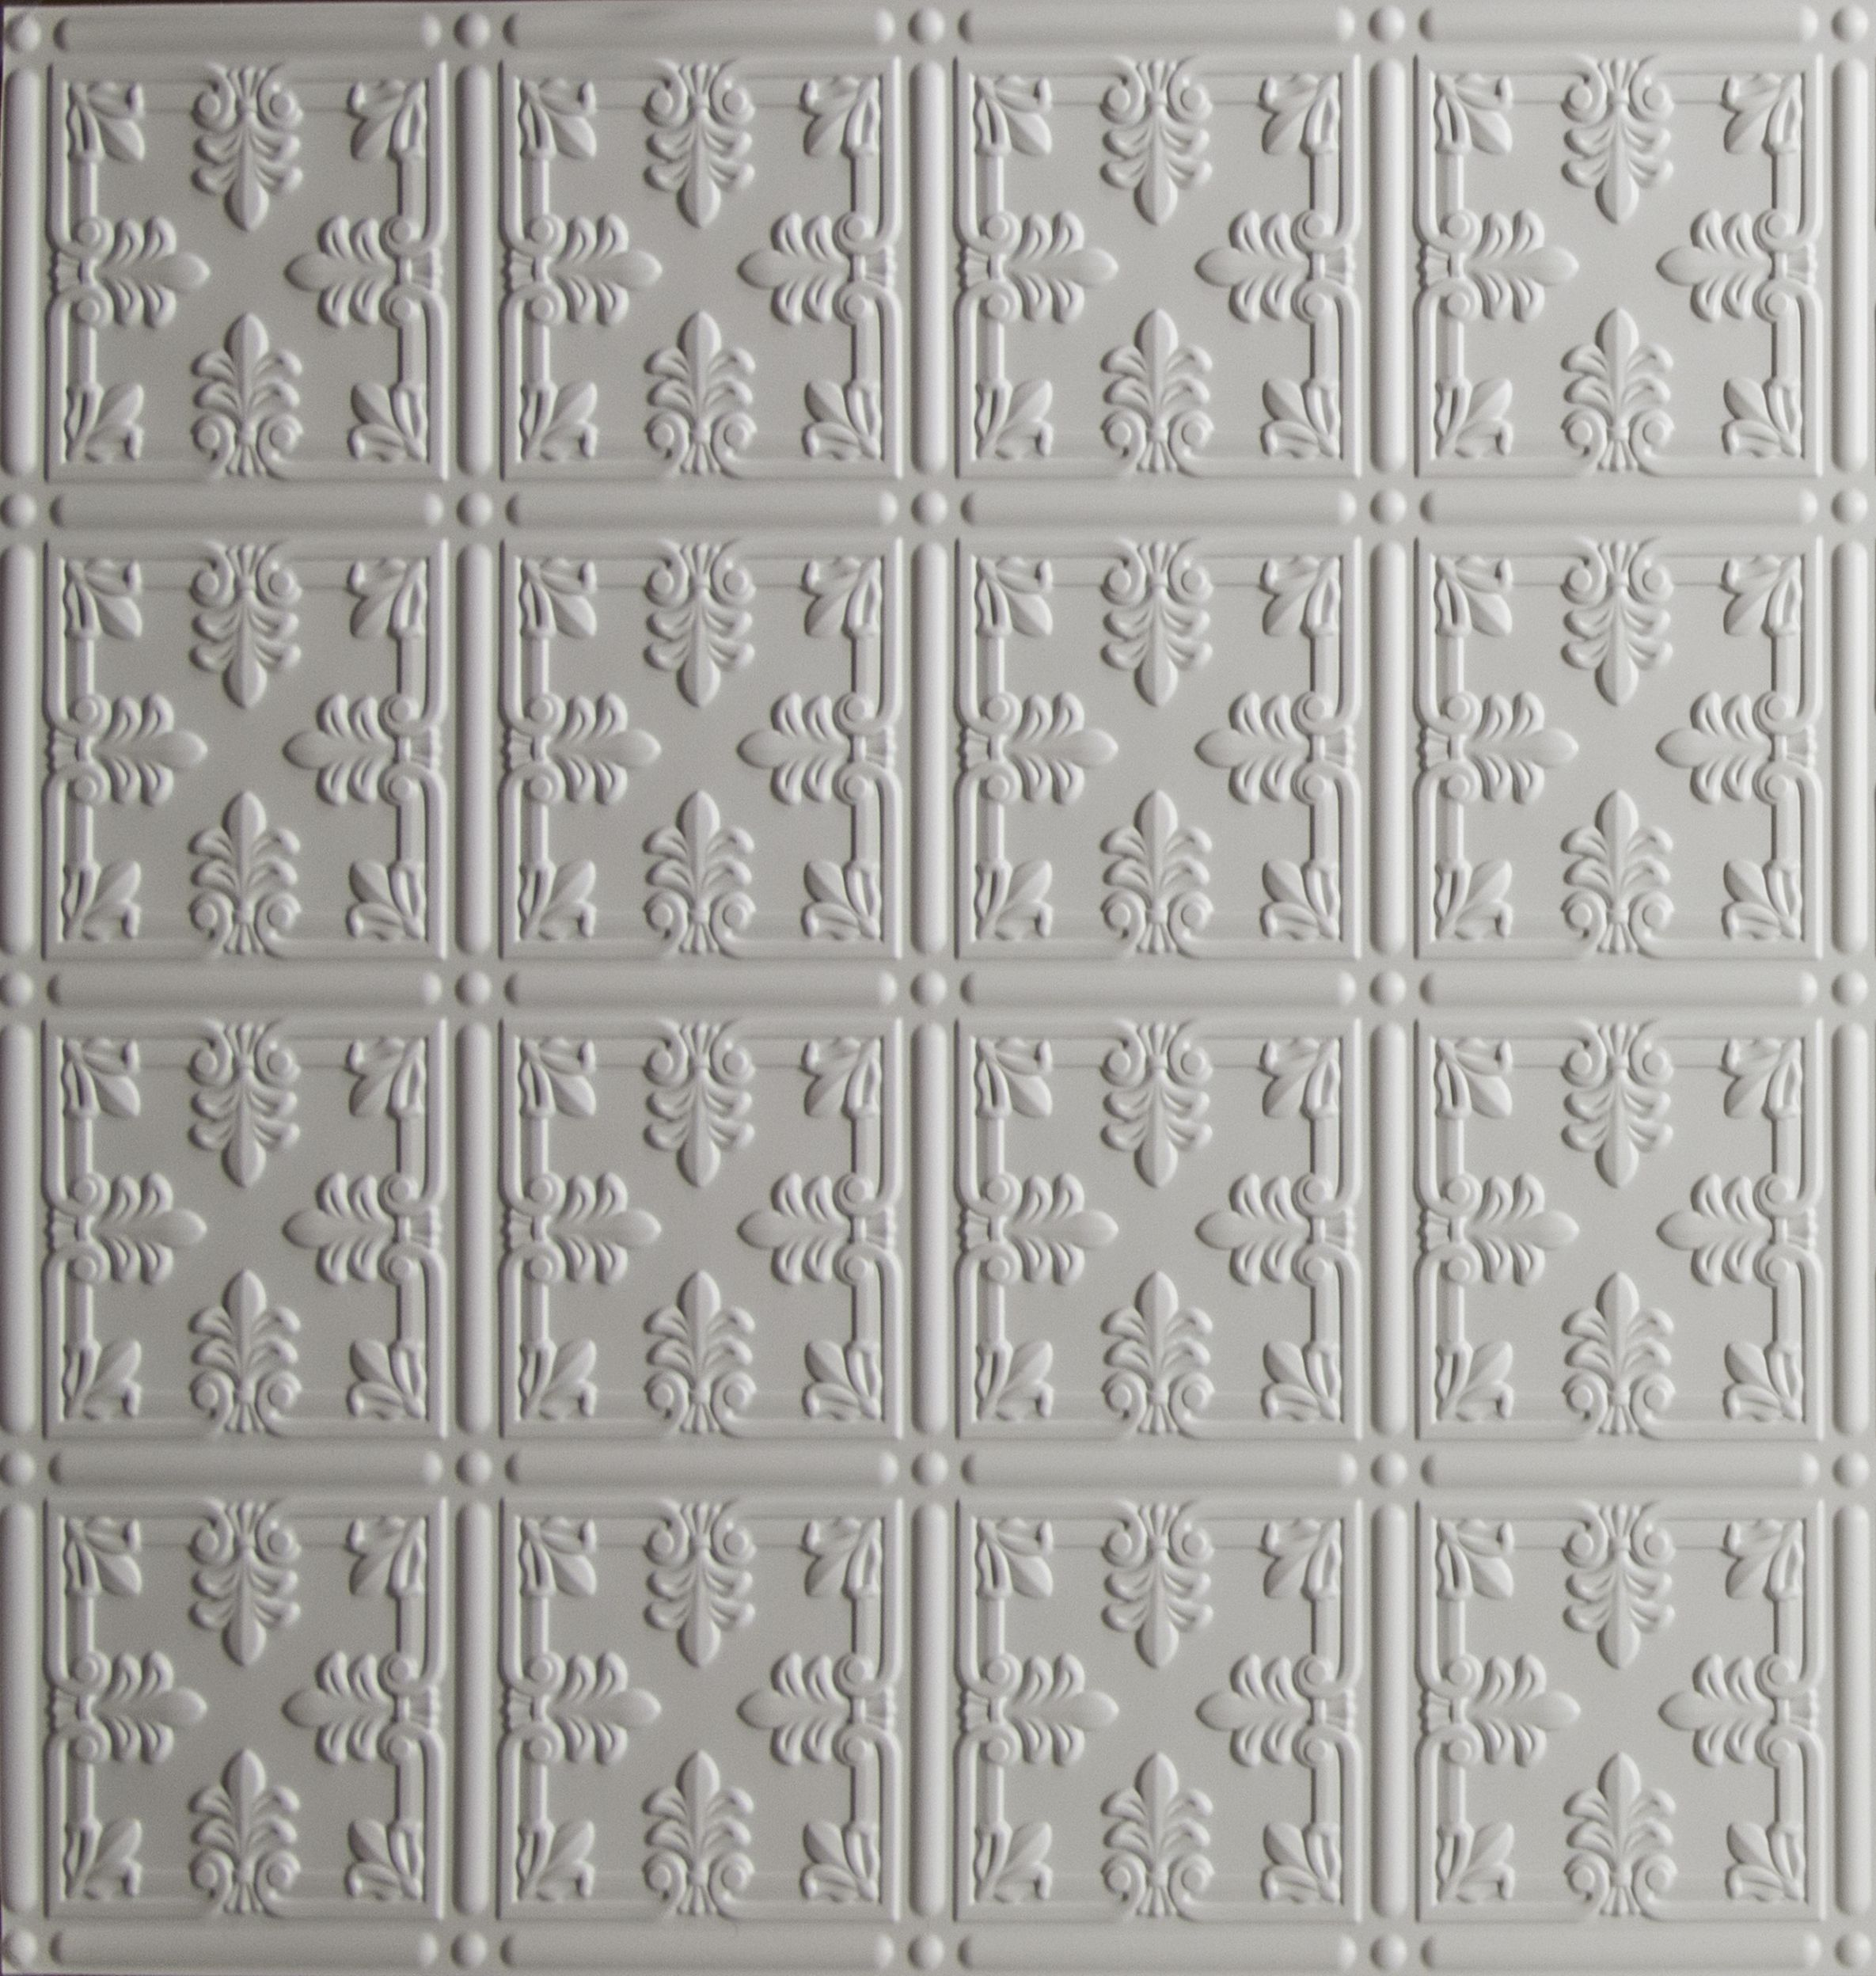 Faux Tin Ceiling Tiles Ceiling Tiles Tin Ceilings And Ceilings